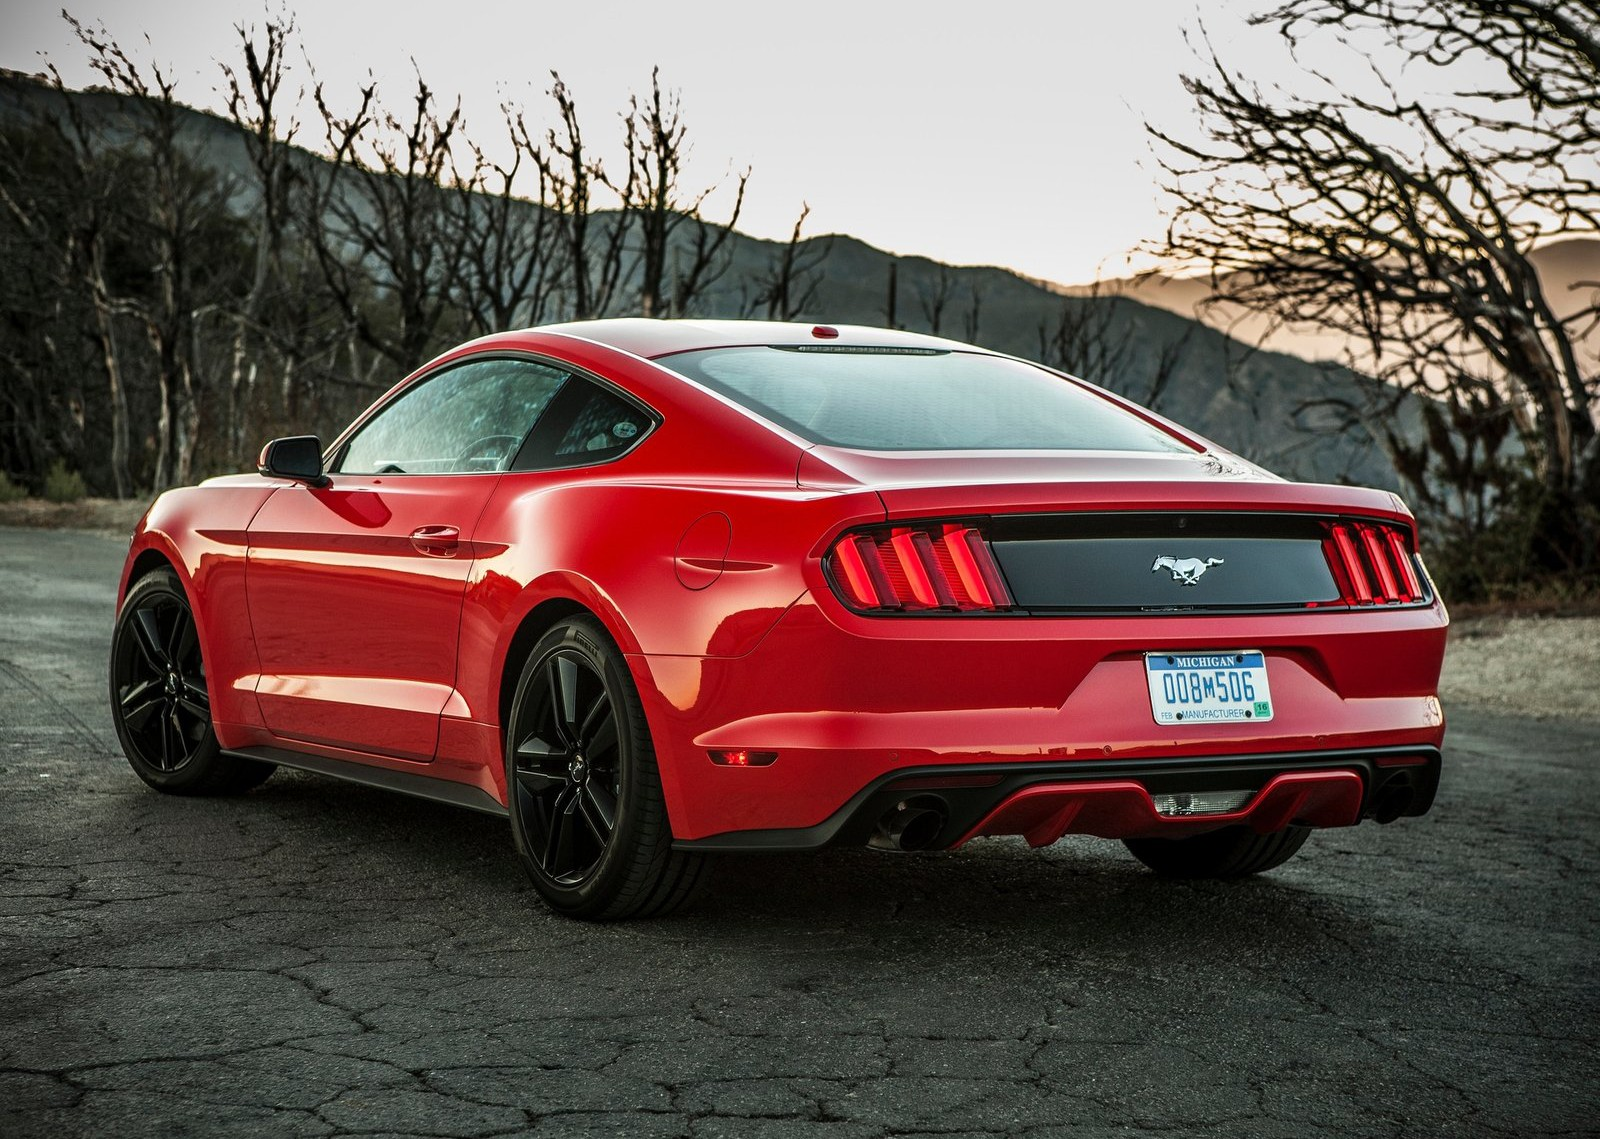 2015 ford mustang euro spec model loses some power over its american brother